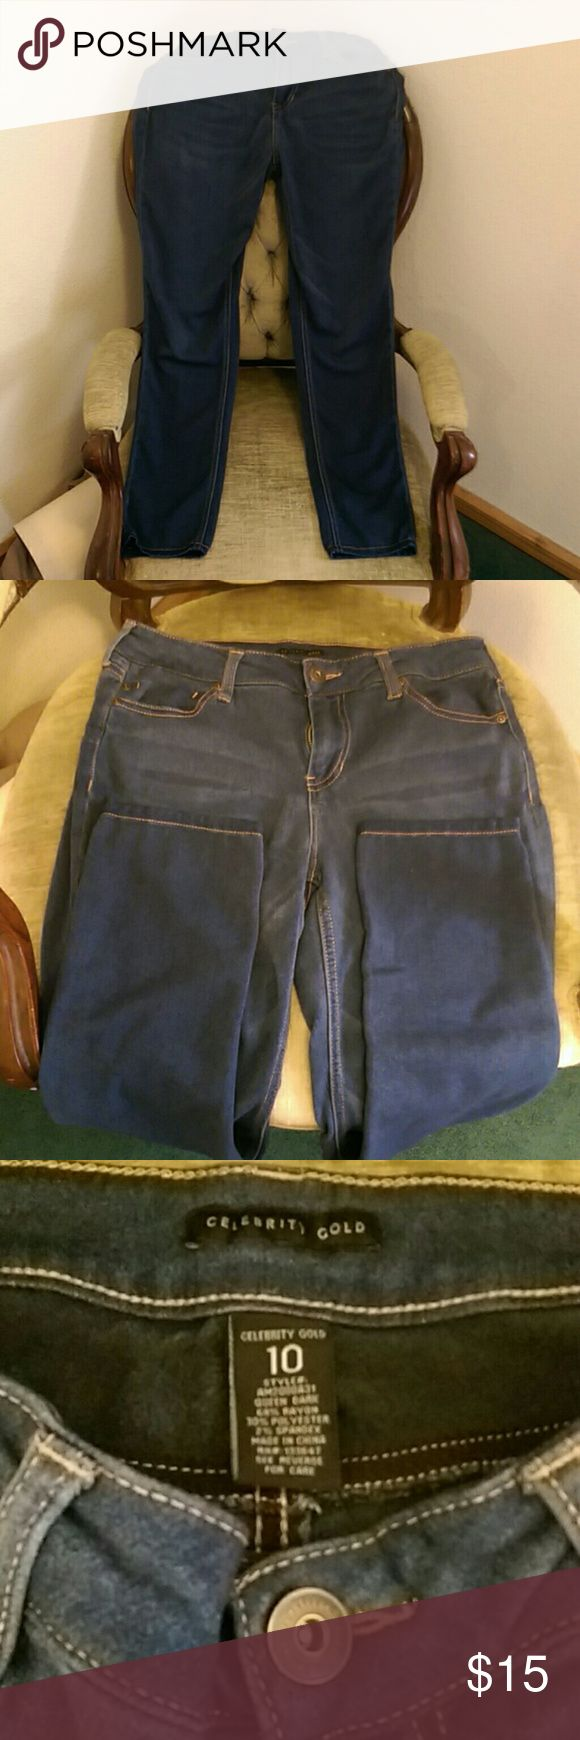 Women's stretchy blue jeans, 10 These jeans stretch and are so comfy. They're too short for me, Inseam is 30. celebrity gold Jeans Straight Leg